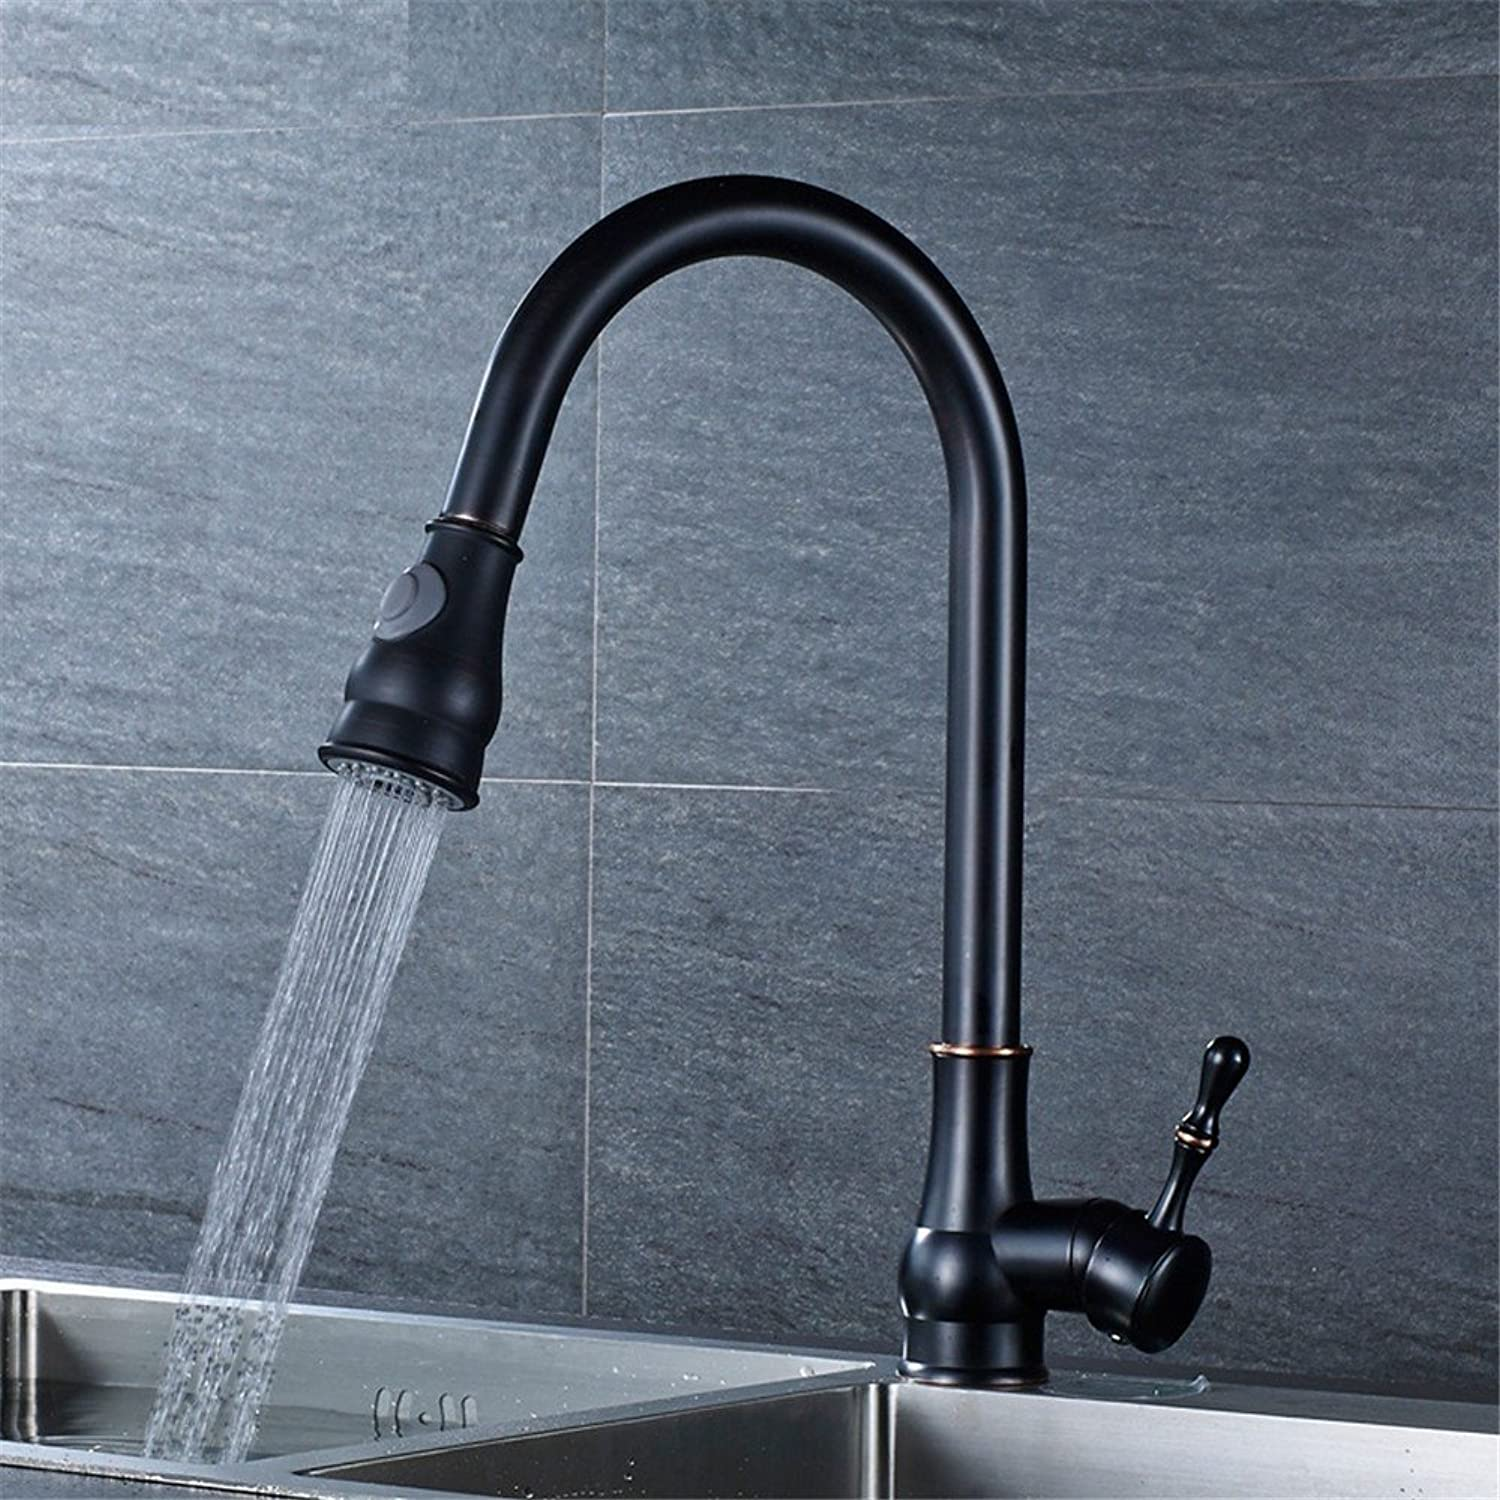 Kitchen Faucet Drawing Double Outlet Gourd redate Hot and Cold Black tap,C